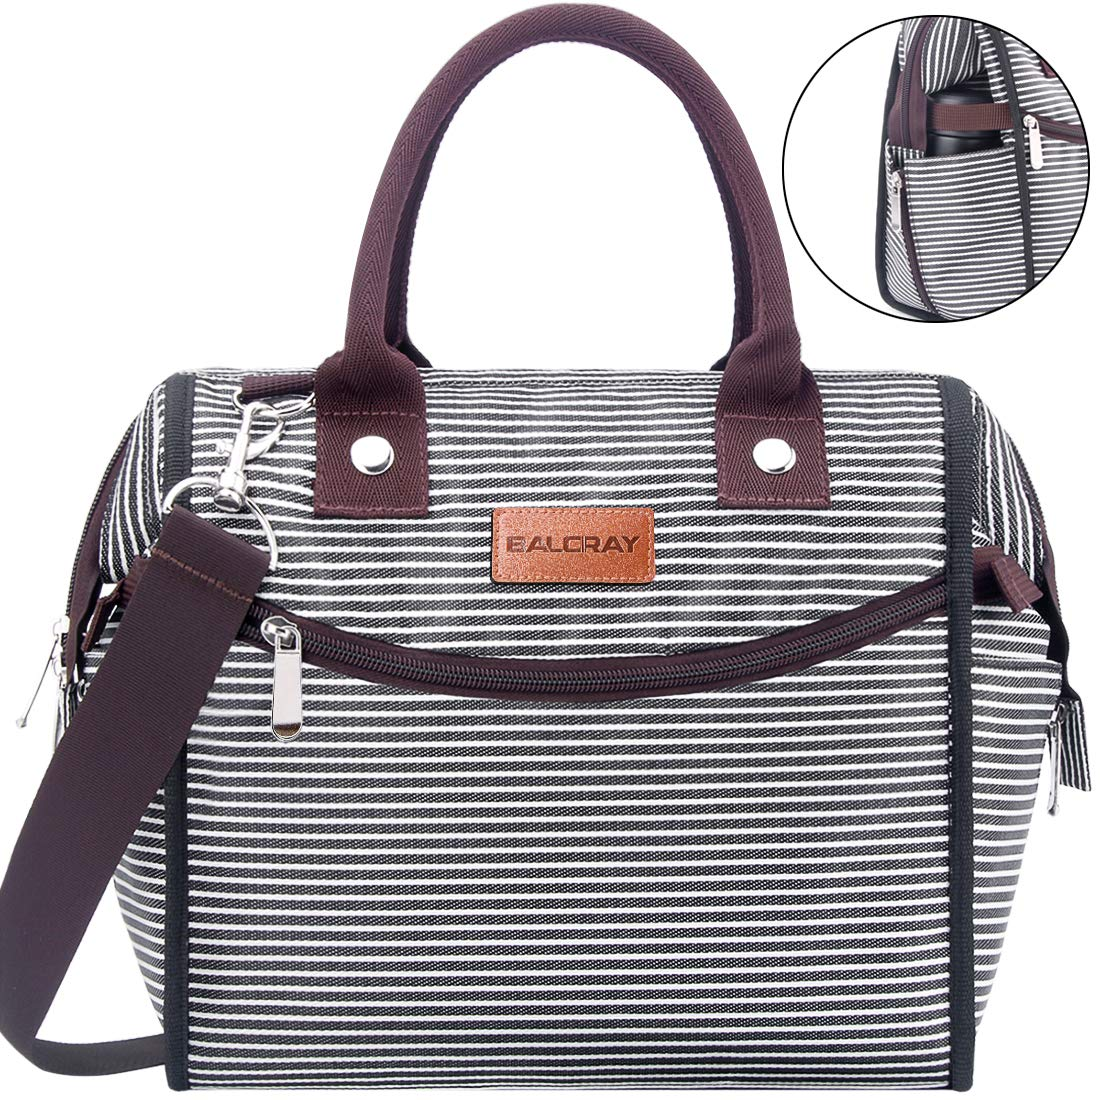 BALORAY Leak-proof Insulated Lunch Bag for Women with Shoulder Strap Wide-open Lunch Cooler Bag Lunch Women Lunch Bag Perfect for Work,Picnic (Black White Strap)